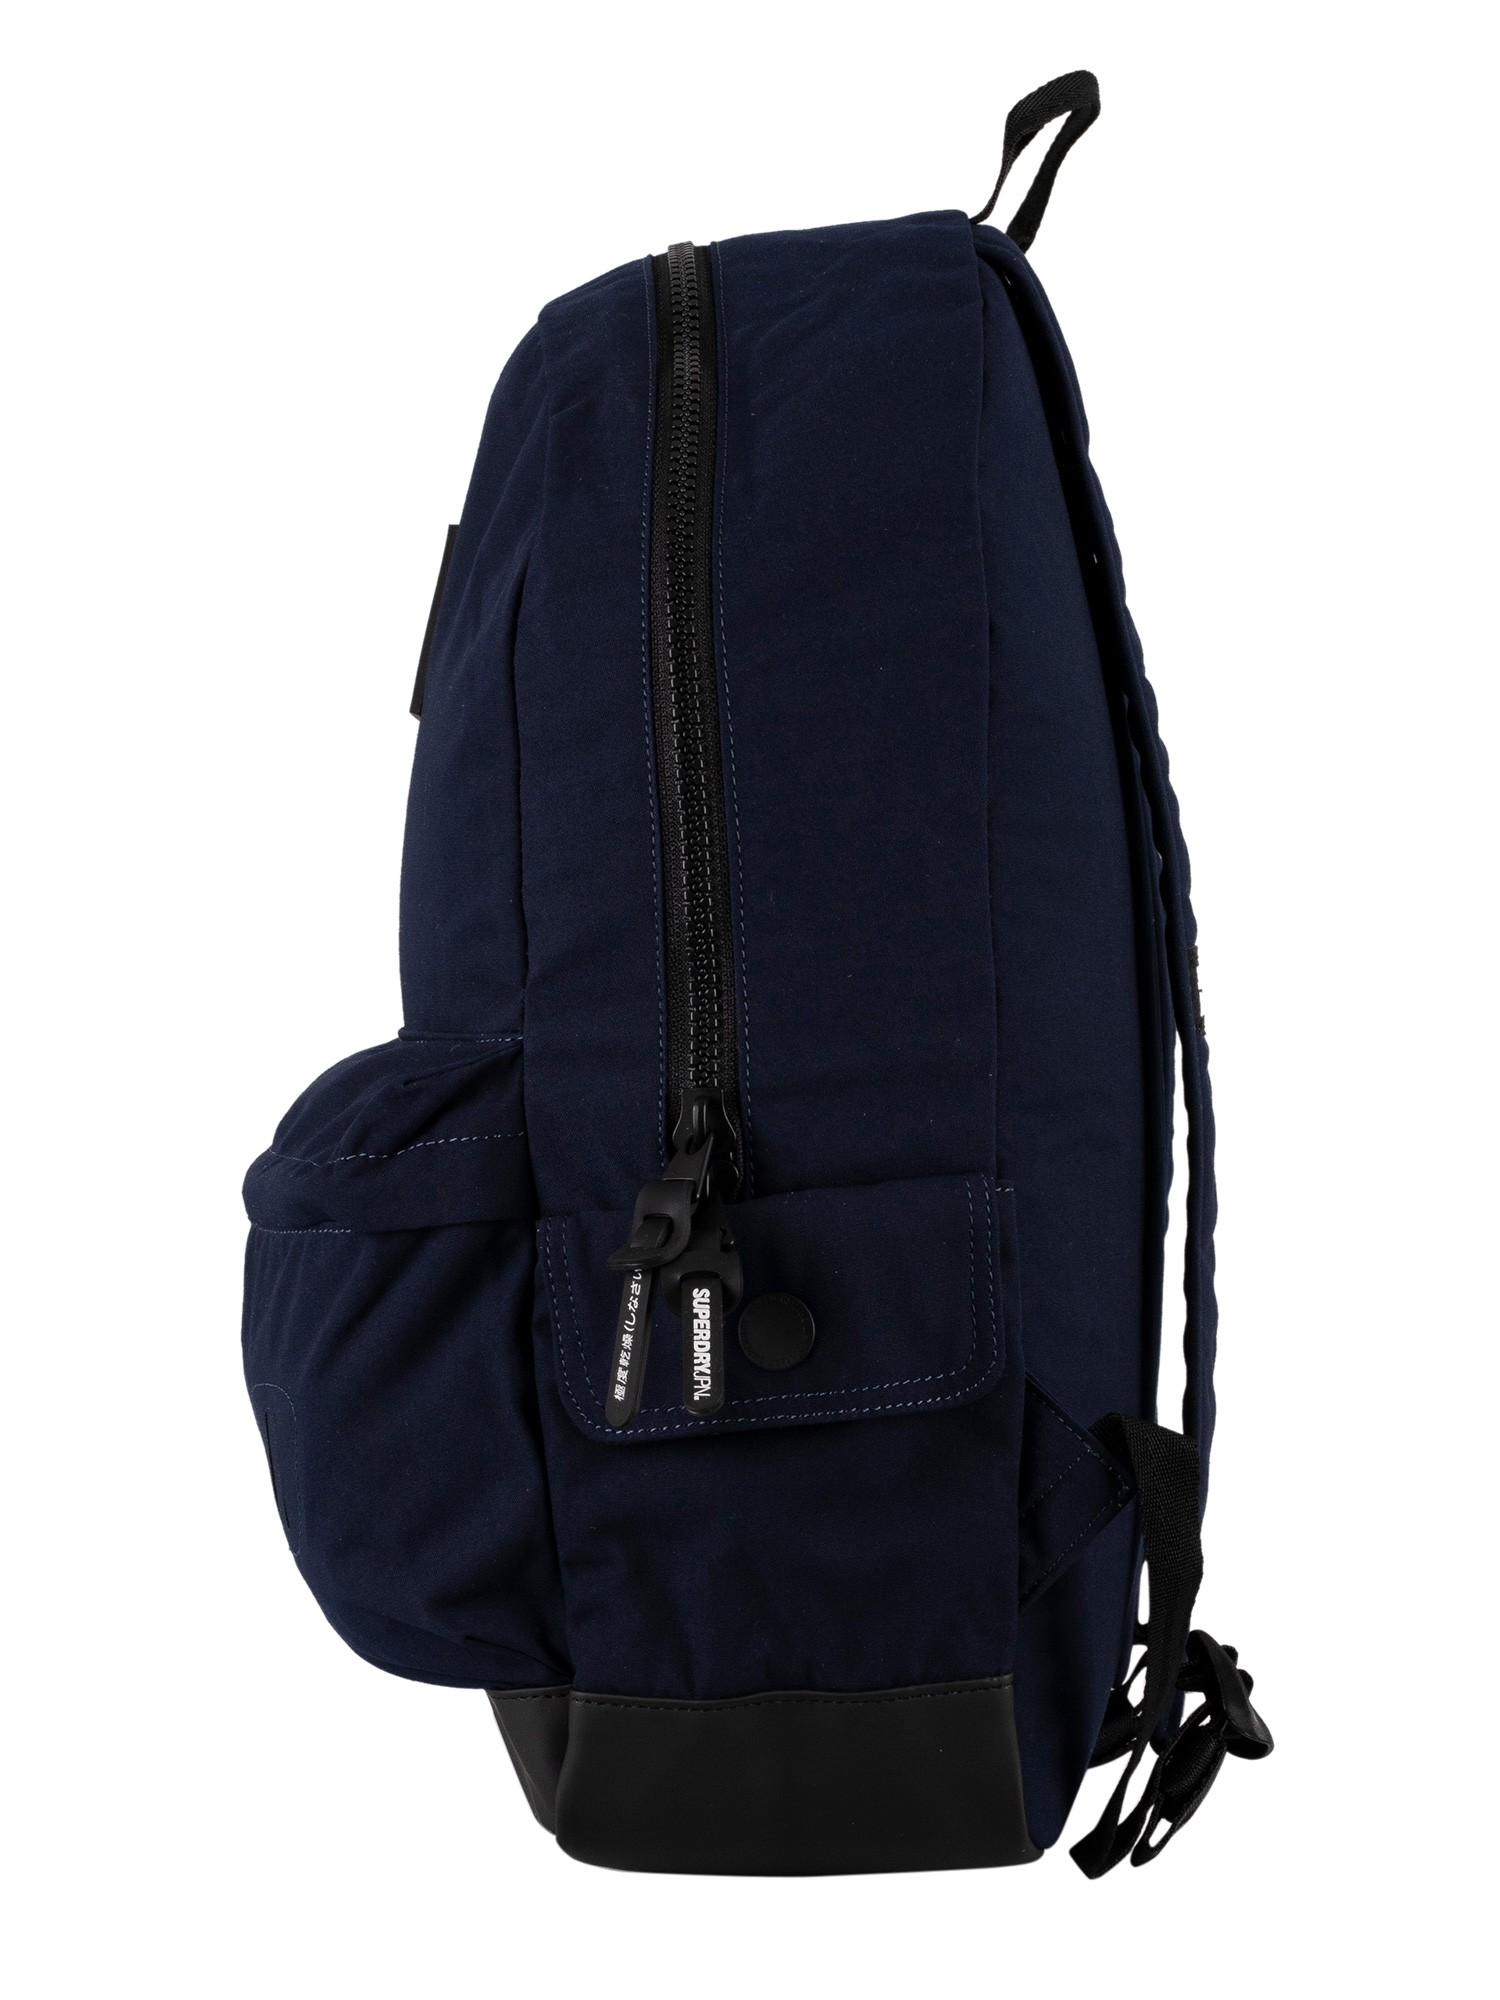 Superdry Classic Montana Backpack - Atlantic Navy